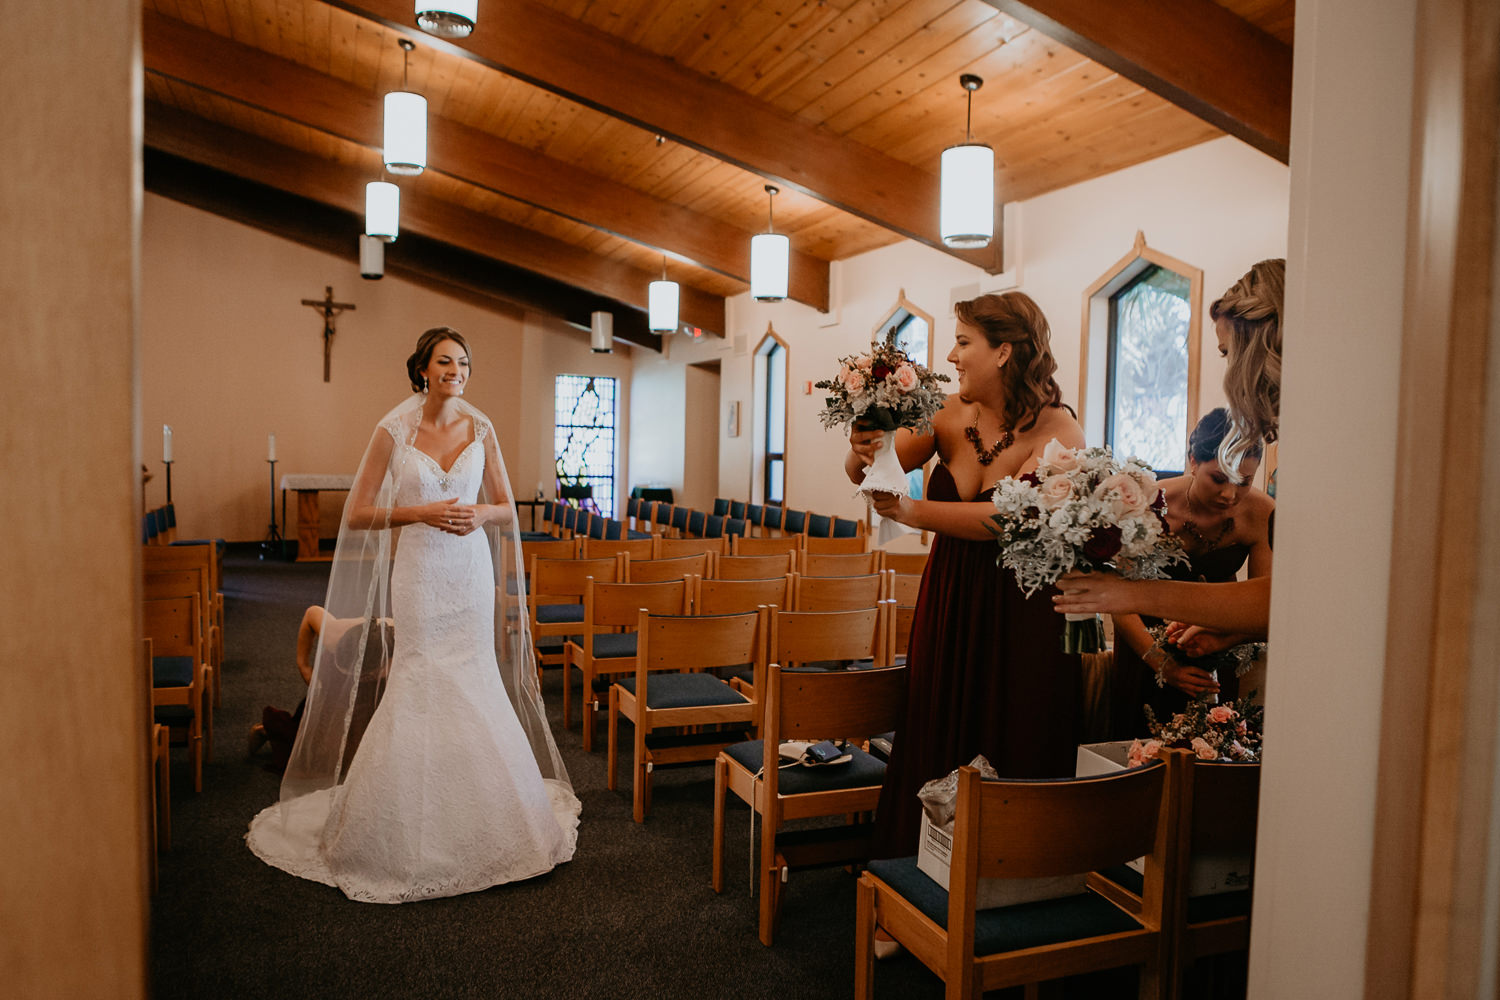 bride smiling inside church room bridesmaids drying their flowers